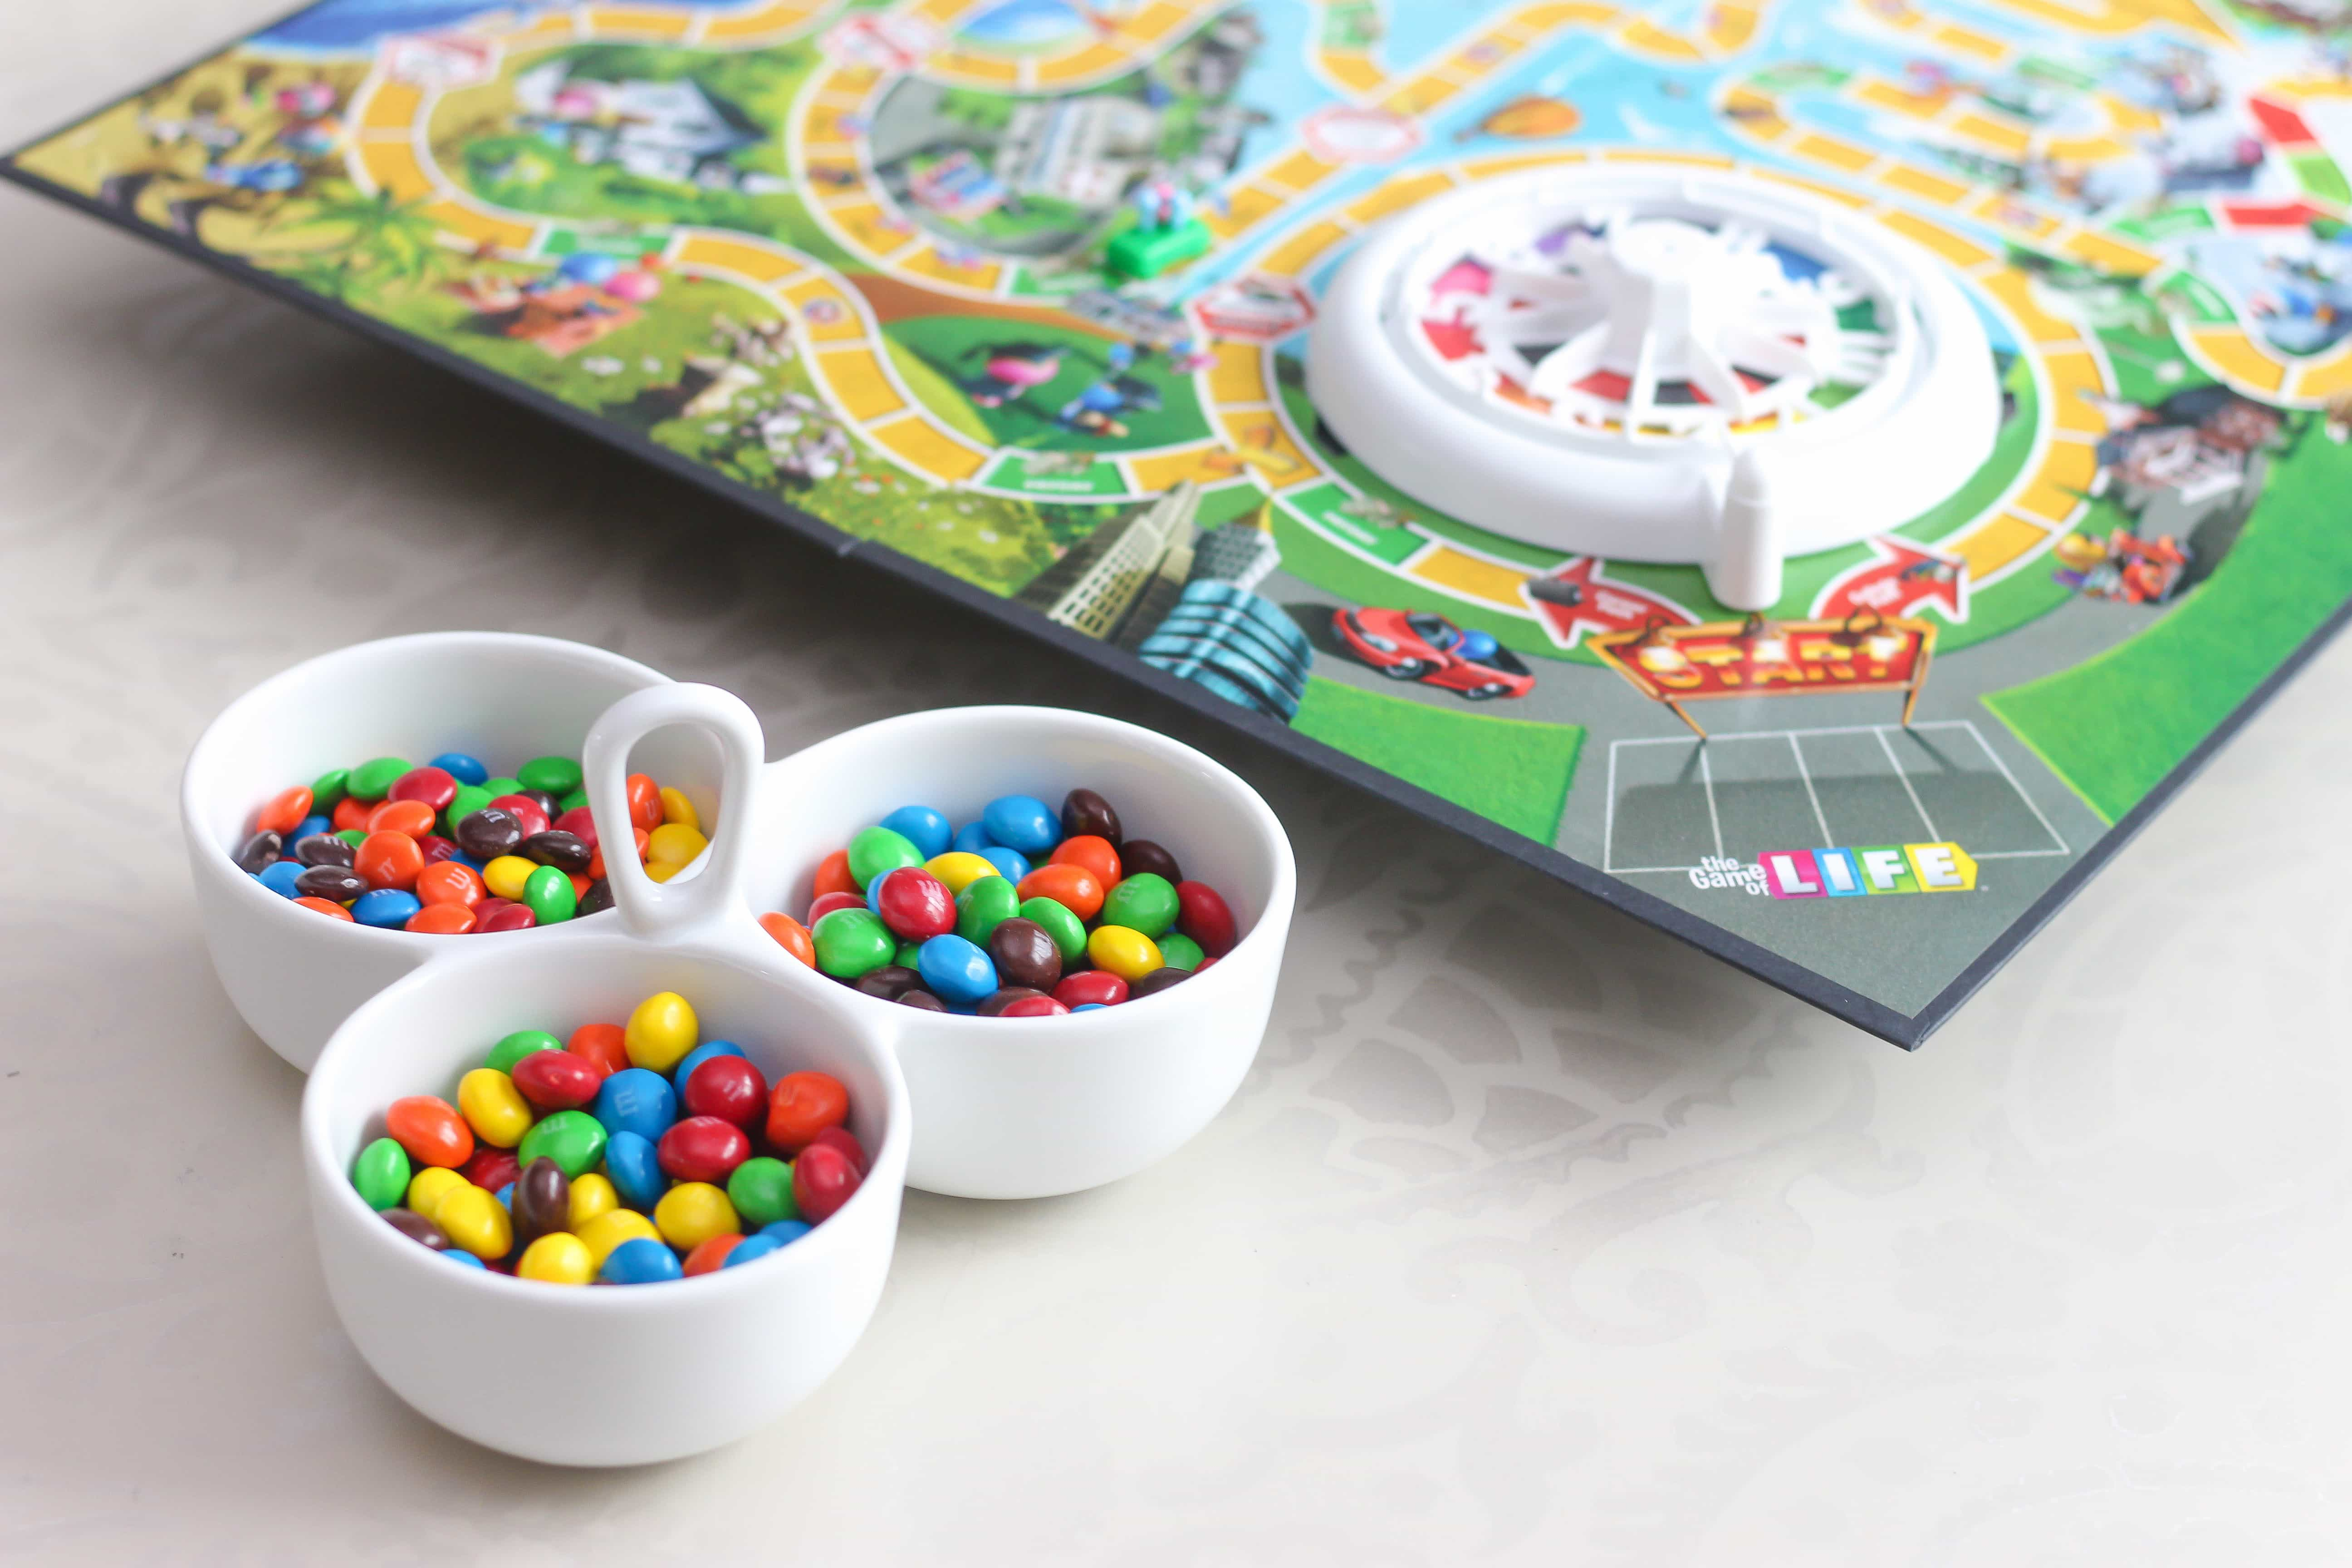 Bowls of M&Ms sitting on a white table with board game next to it